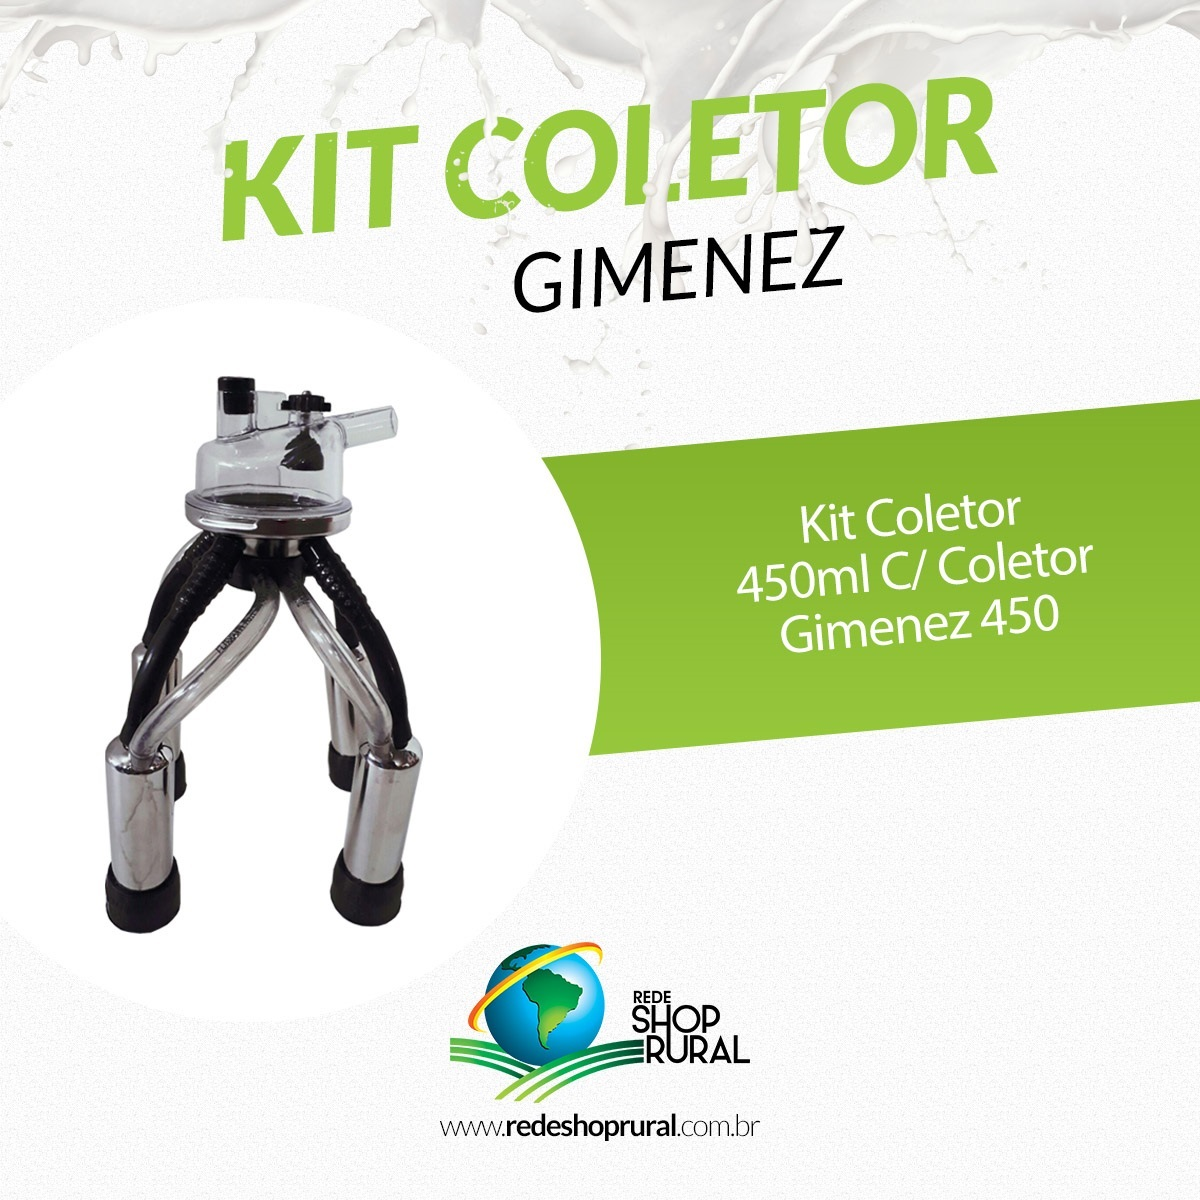 Kit Coletor Gimenez